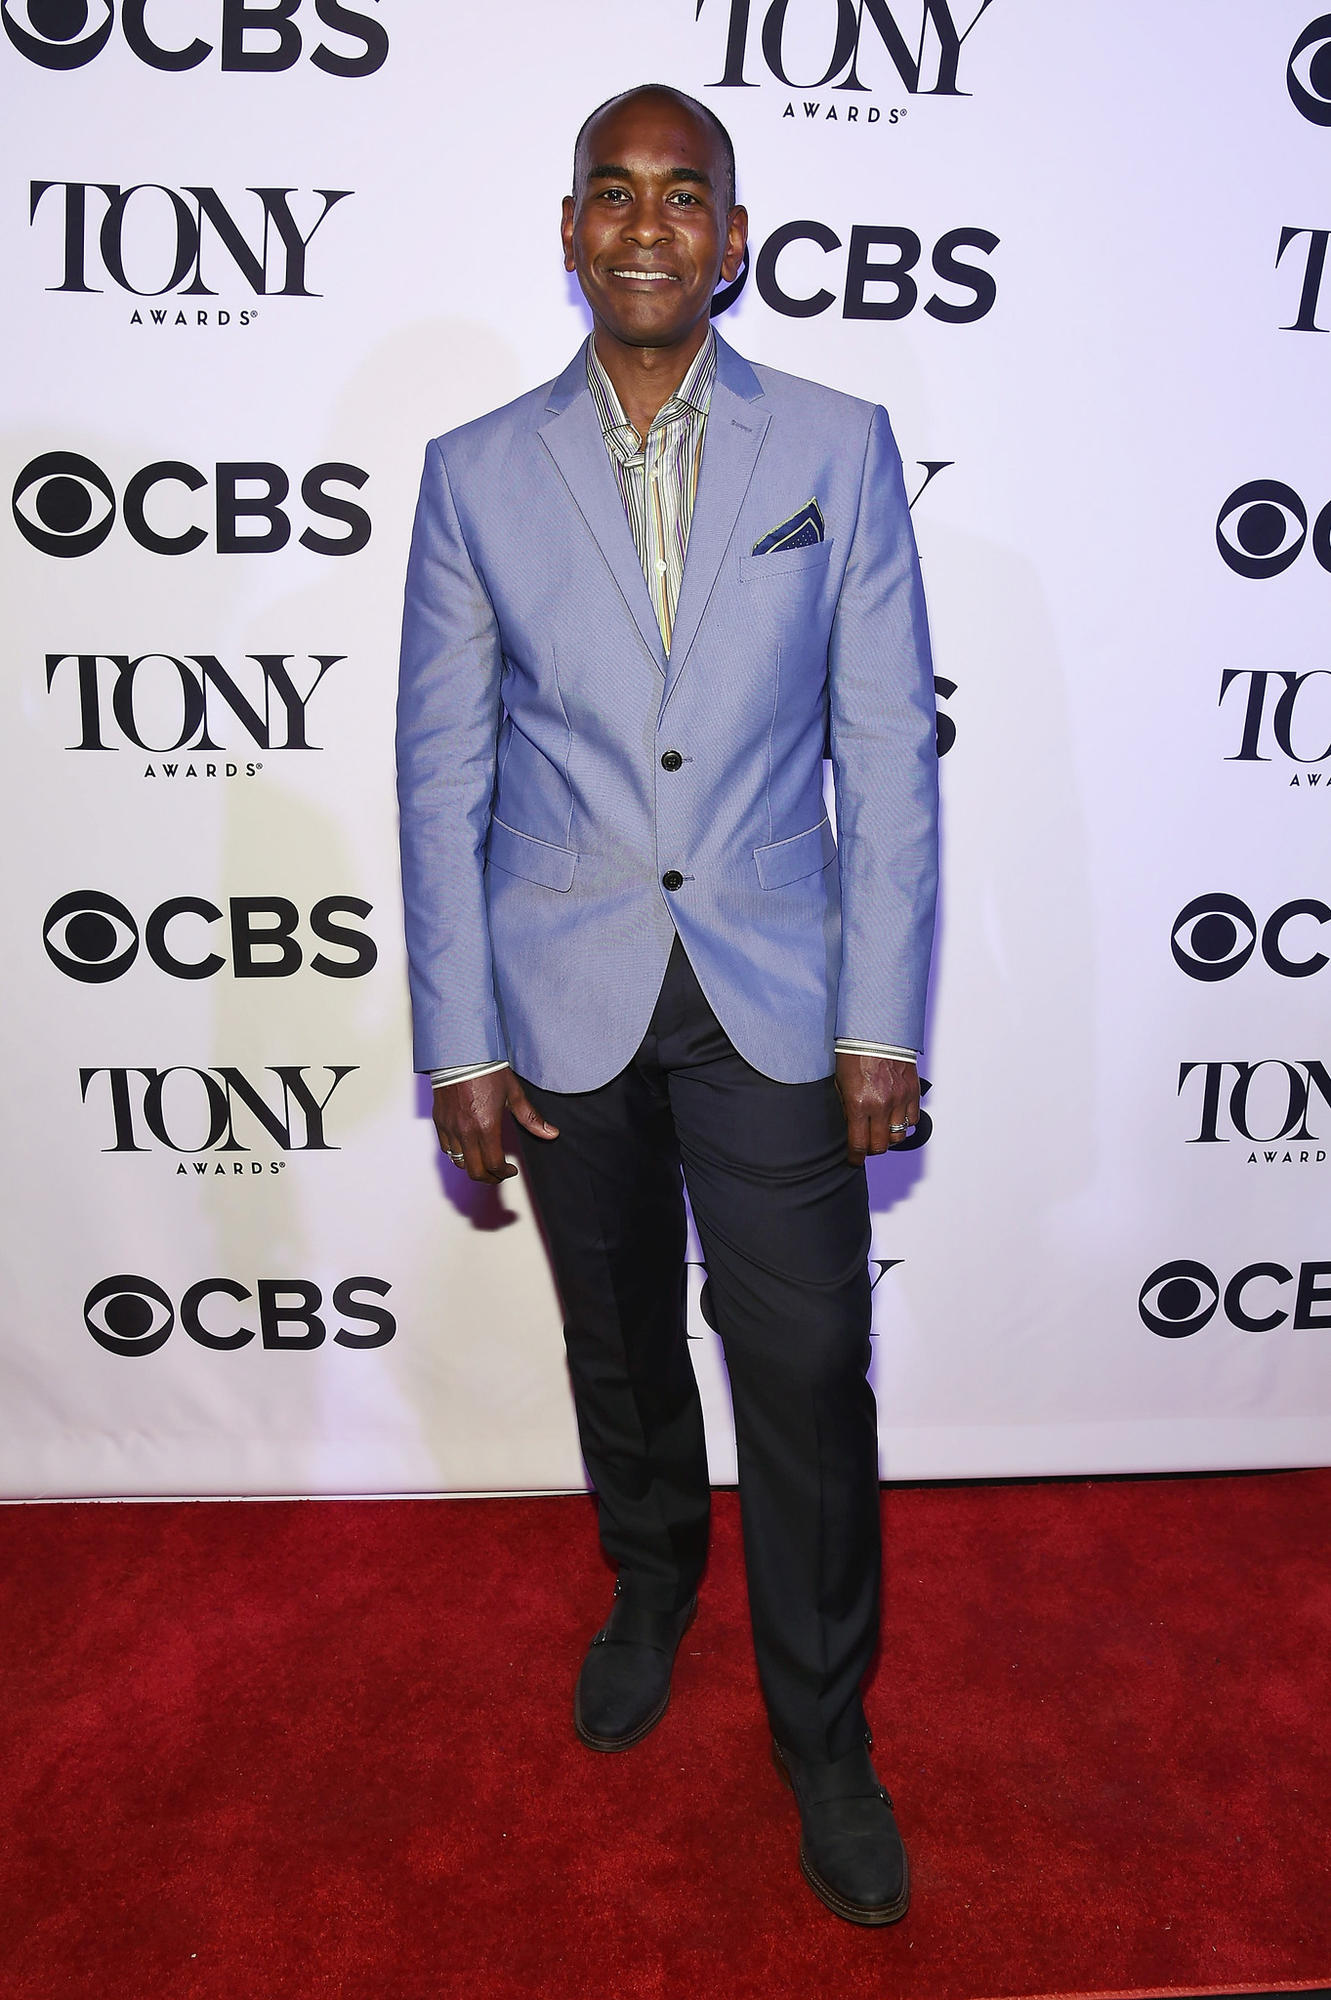 Tony-nominated costume design Paul Tazewell at a Tony Awards event Monday in New York City.